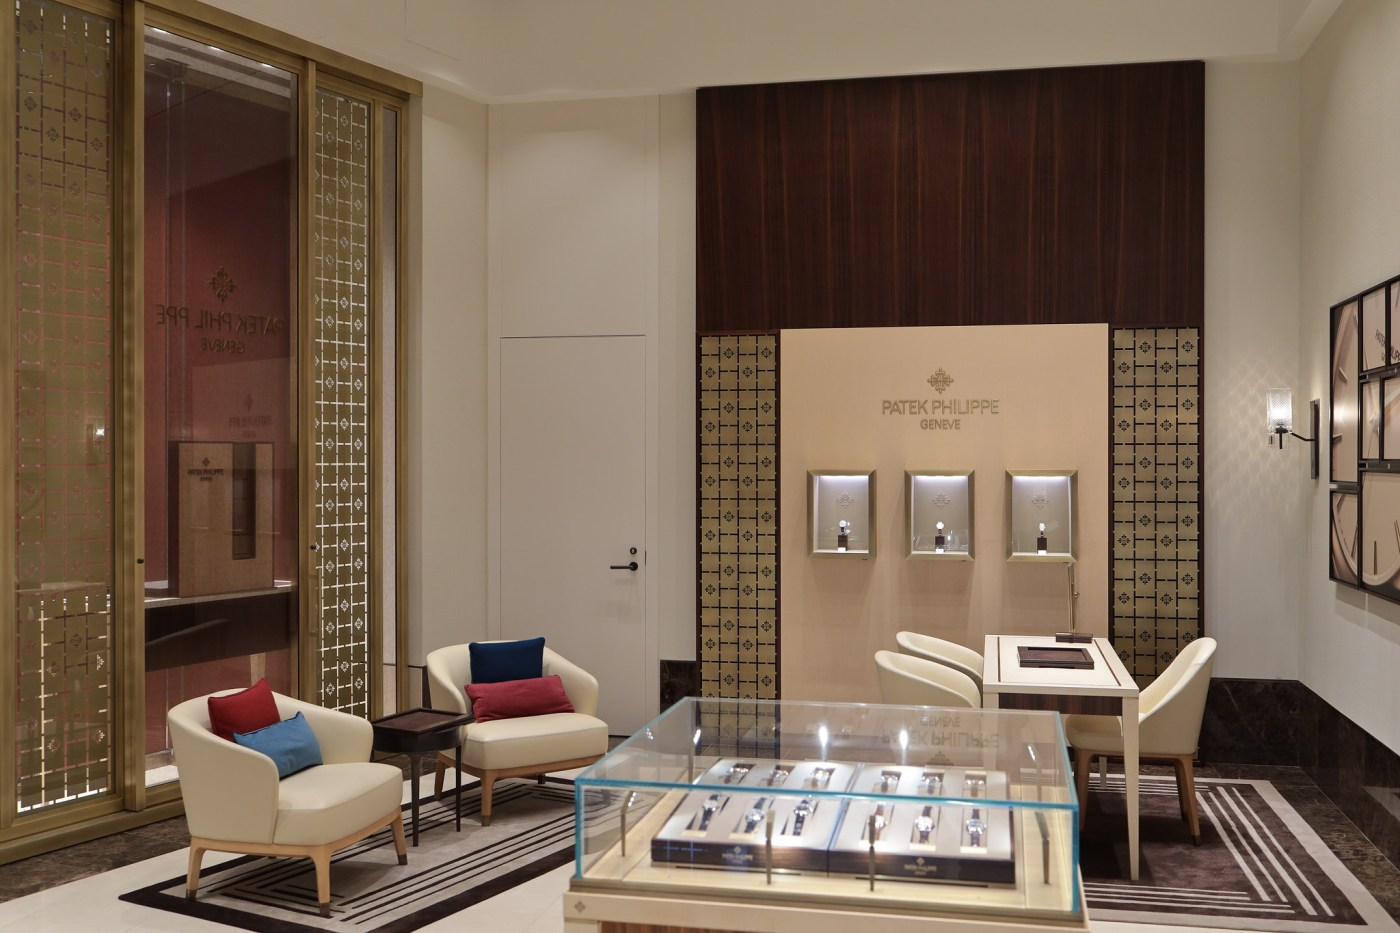 Dedicated Patek Philippe boutique-within-Watches of Switzerland Hudson Yards 2019